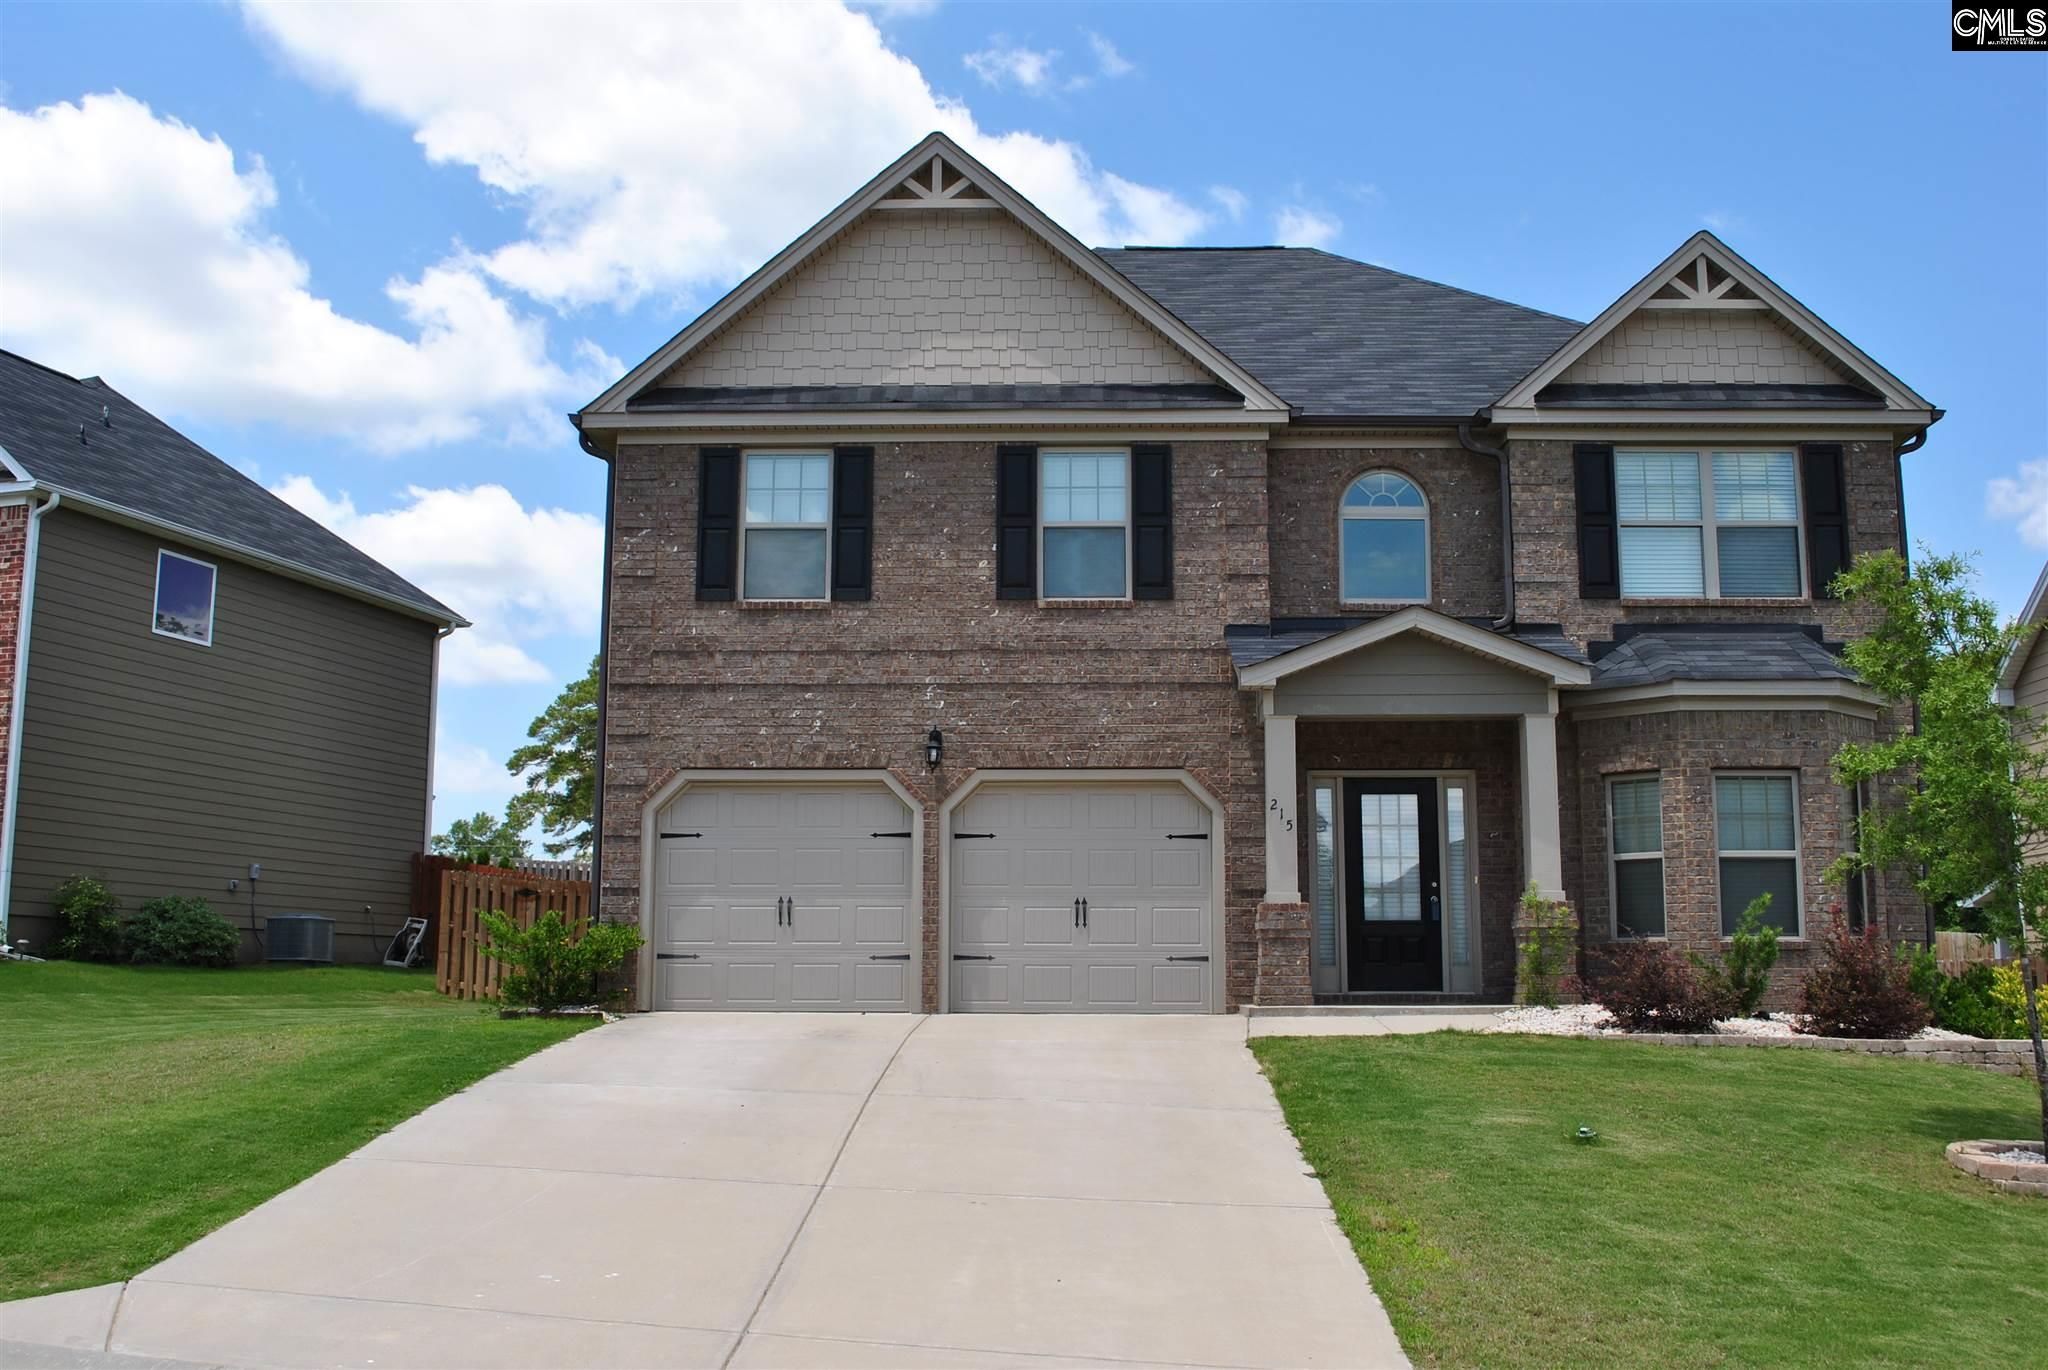 215 Grey Oaks Lexington, SC 29072